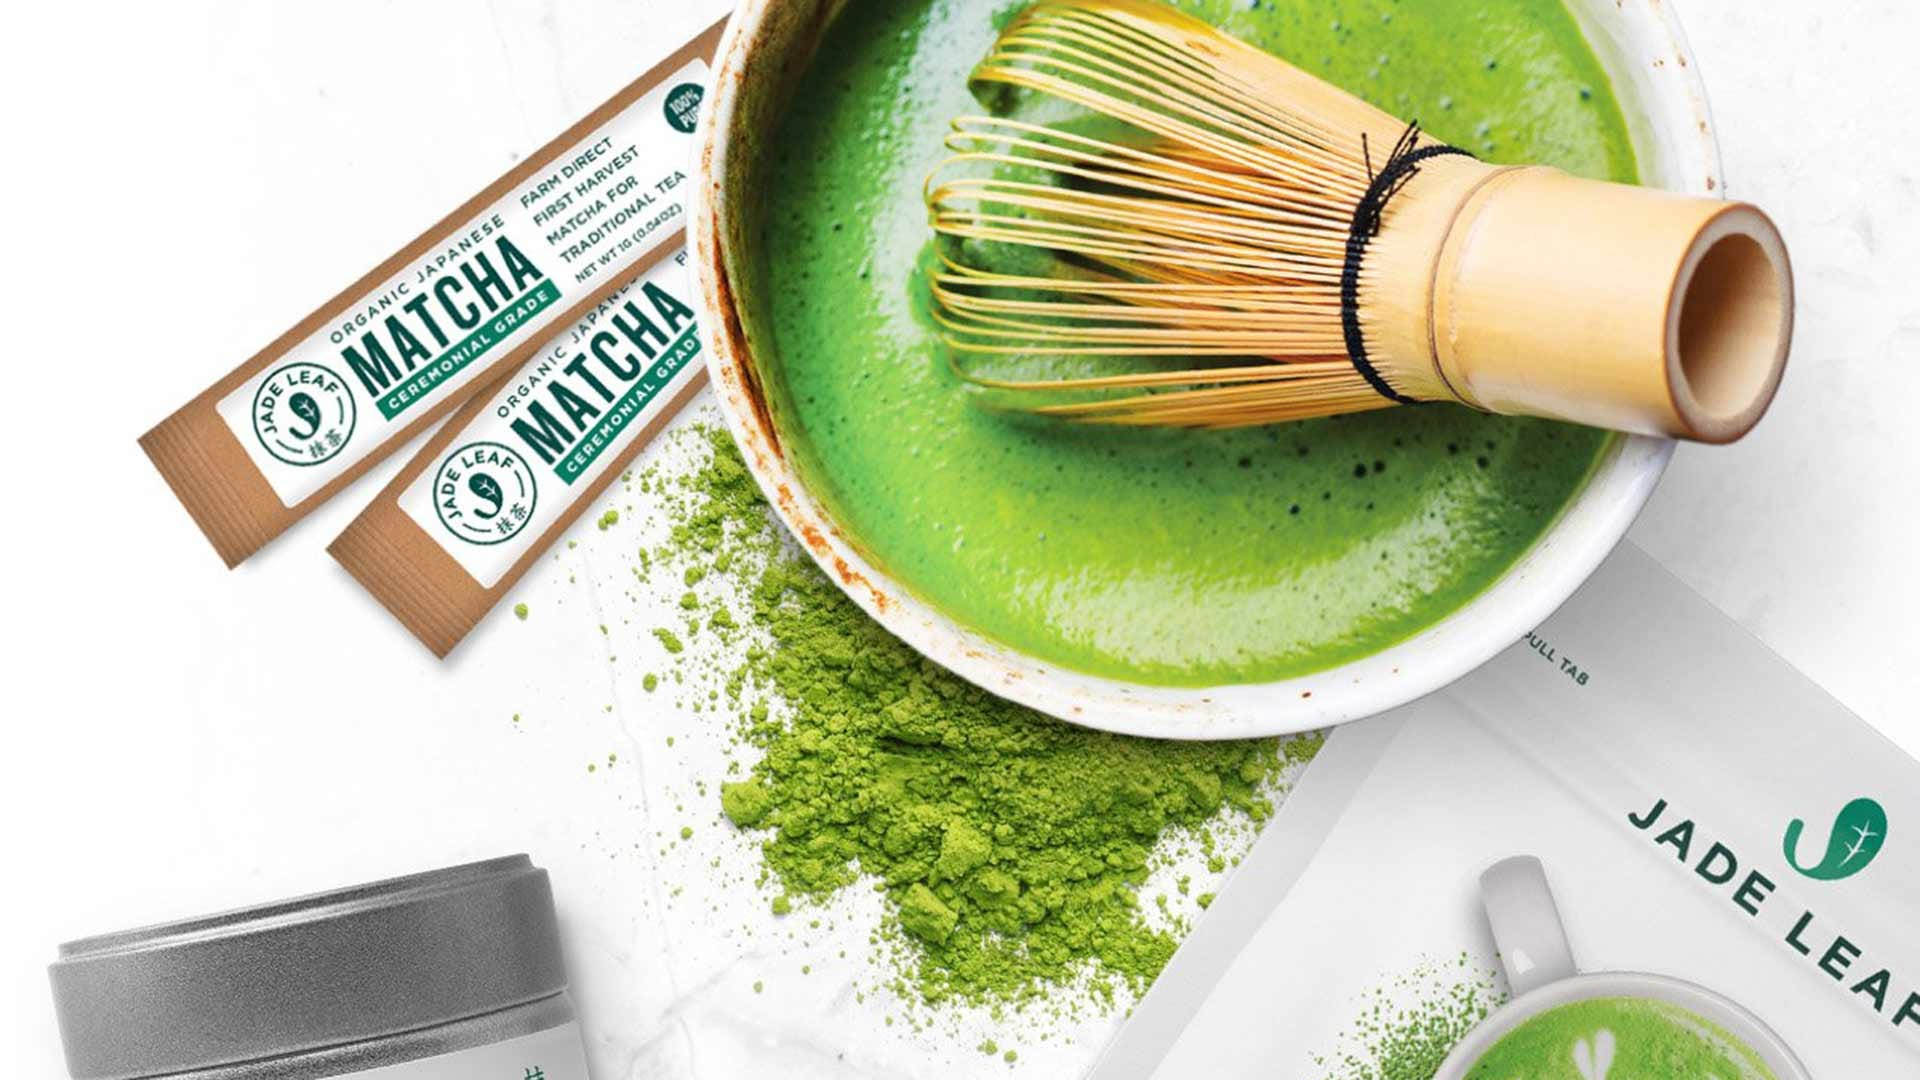 A fresh cup of matcha tea with a traditional bamboo whisk.